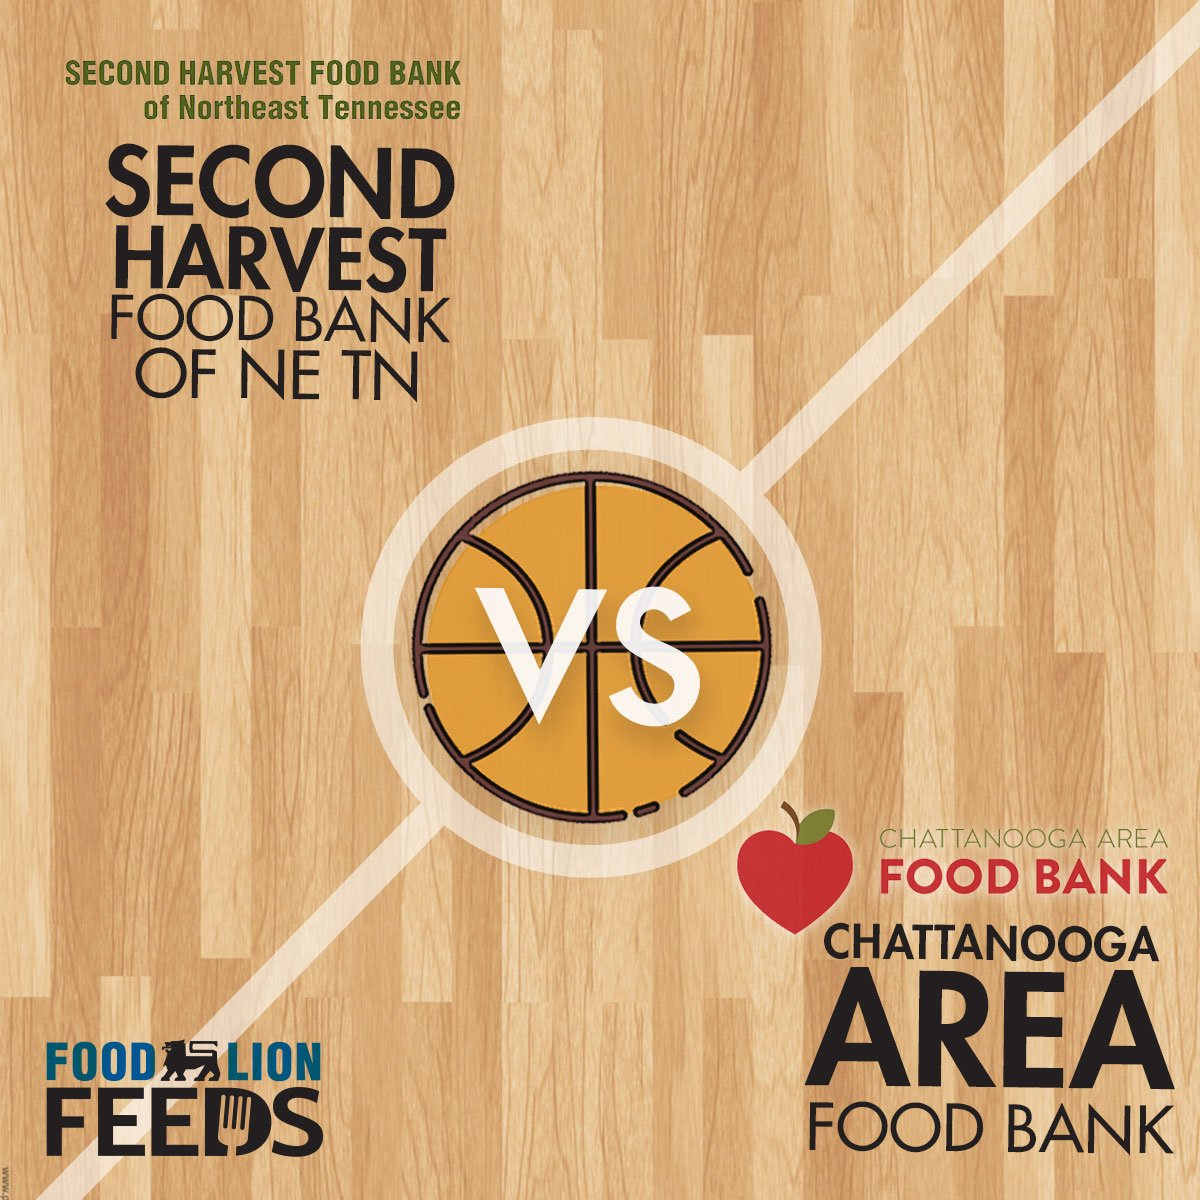 It's #FLFMealMadness! Like this tweet to see @2ndHarvestNETN advance to the next round - RT for @chattfoodbank! https://t.co/5gEAp7RFer